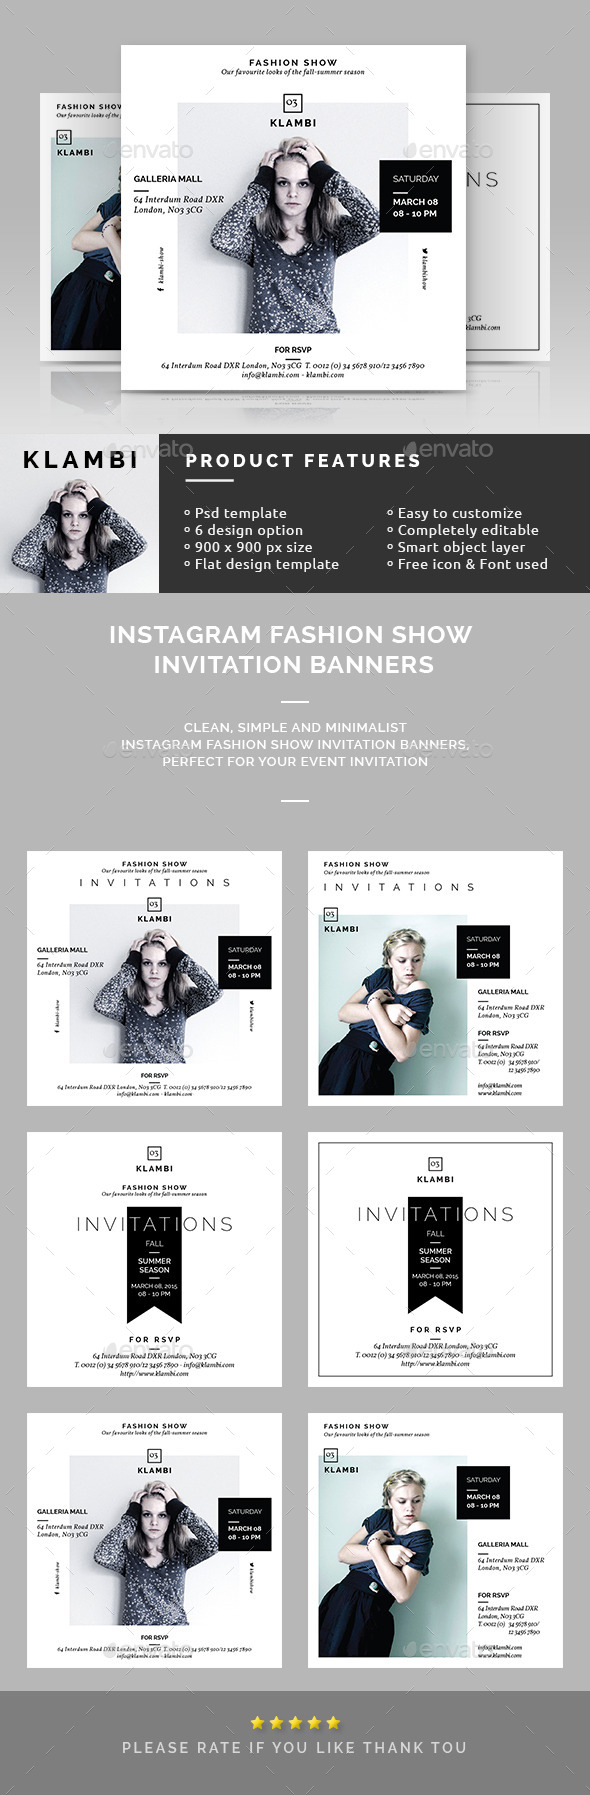 Instagram Fashion Show Invitation Banners - Miscellaneous Social Media